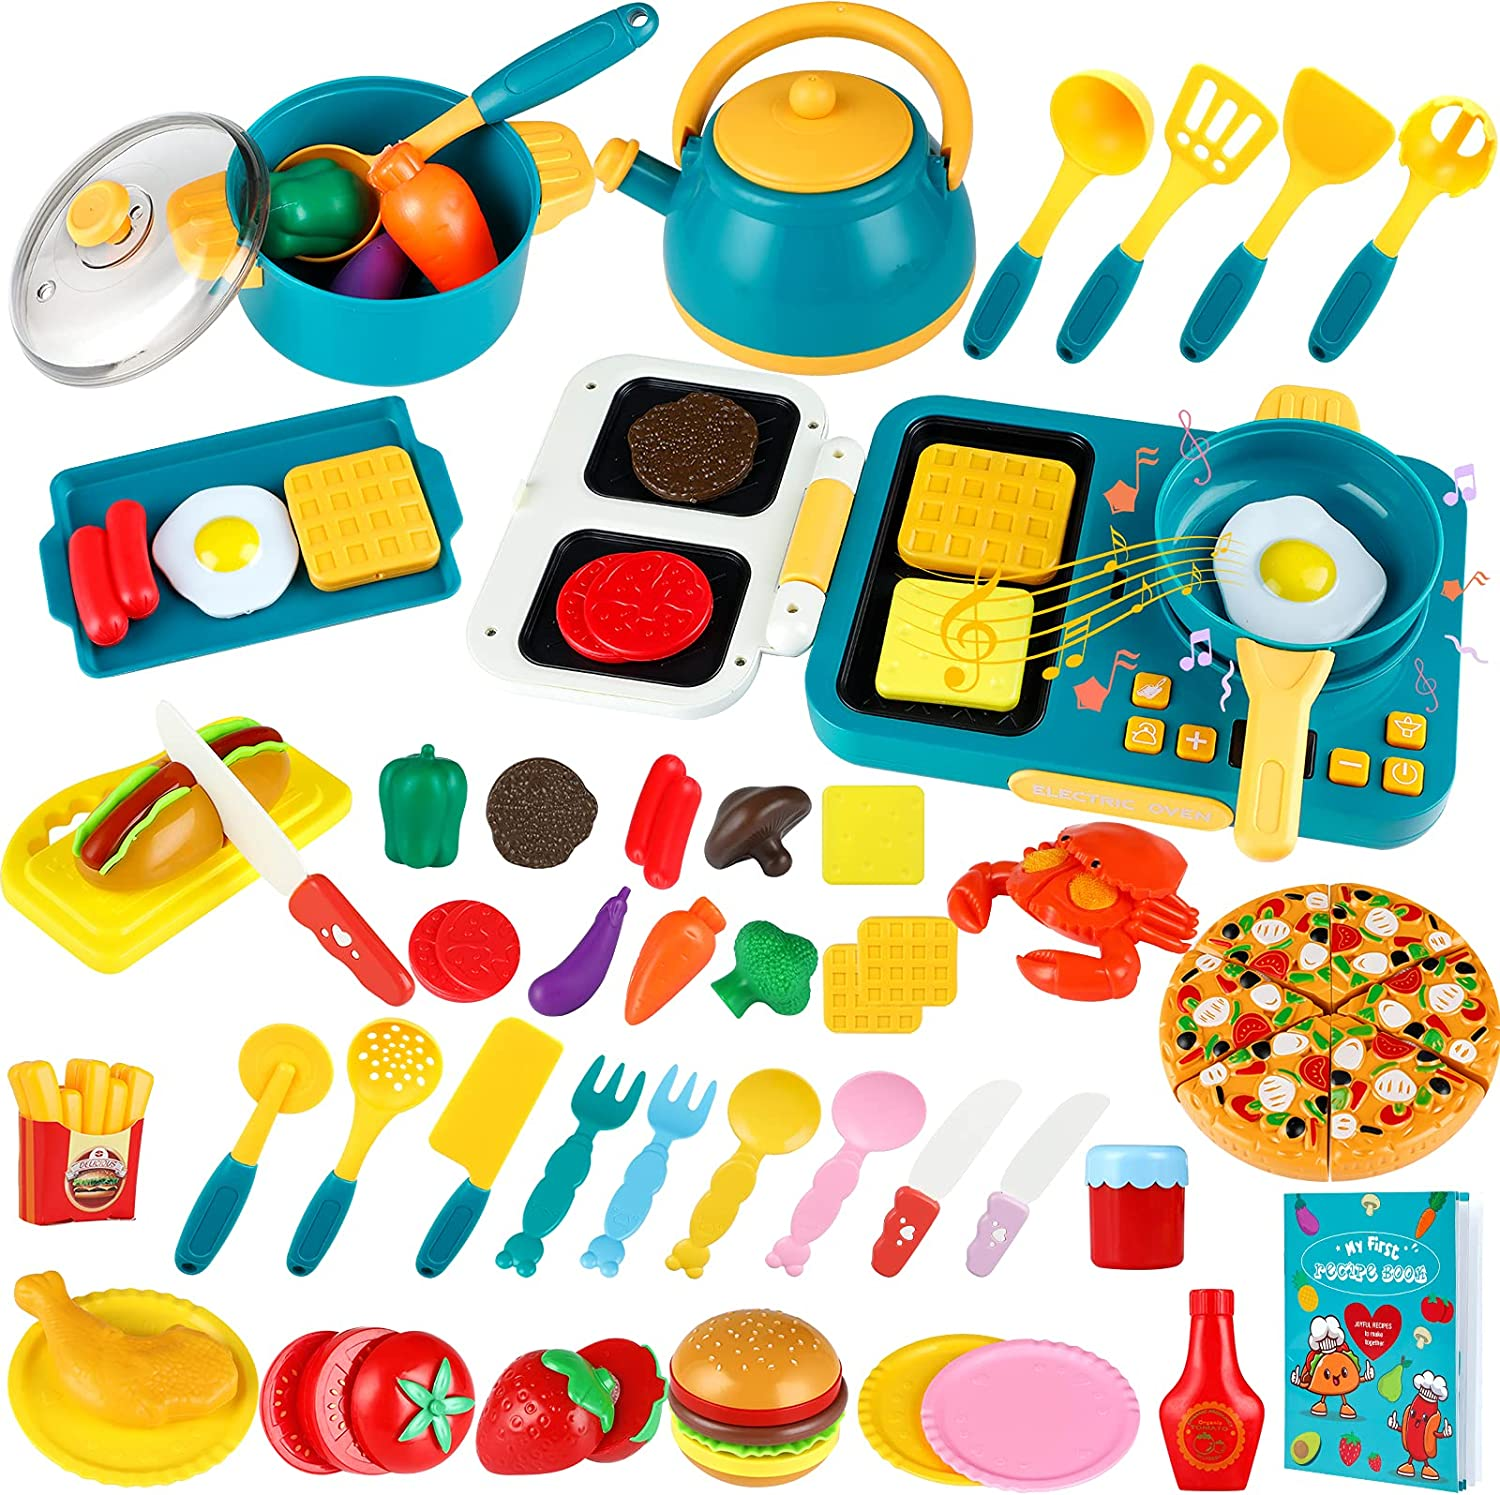 INNOCHEER Play Kitchen Accessories Set with Recipe Book, 48 Pcs Pretend Play Kitchen Toys Includes Pot and Pan, Cook top, Cutting Play Food and Vegetable, Pizza, Cooking Utensils for Toddlers Kids 3+